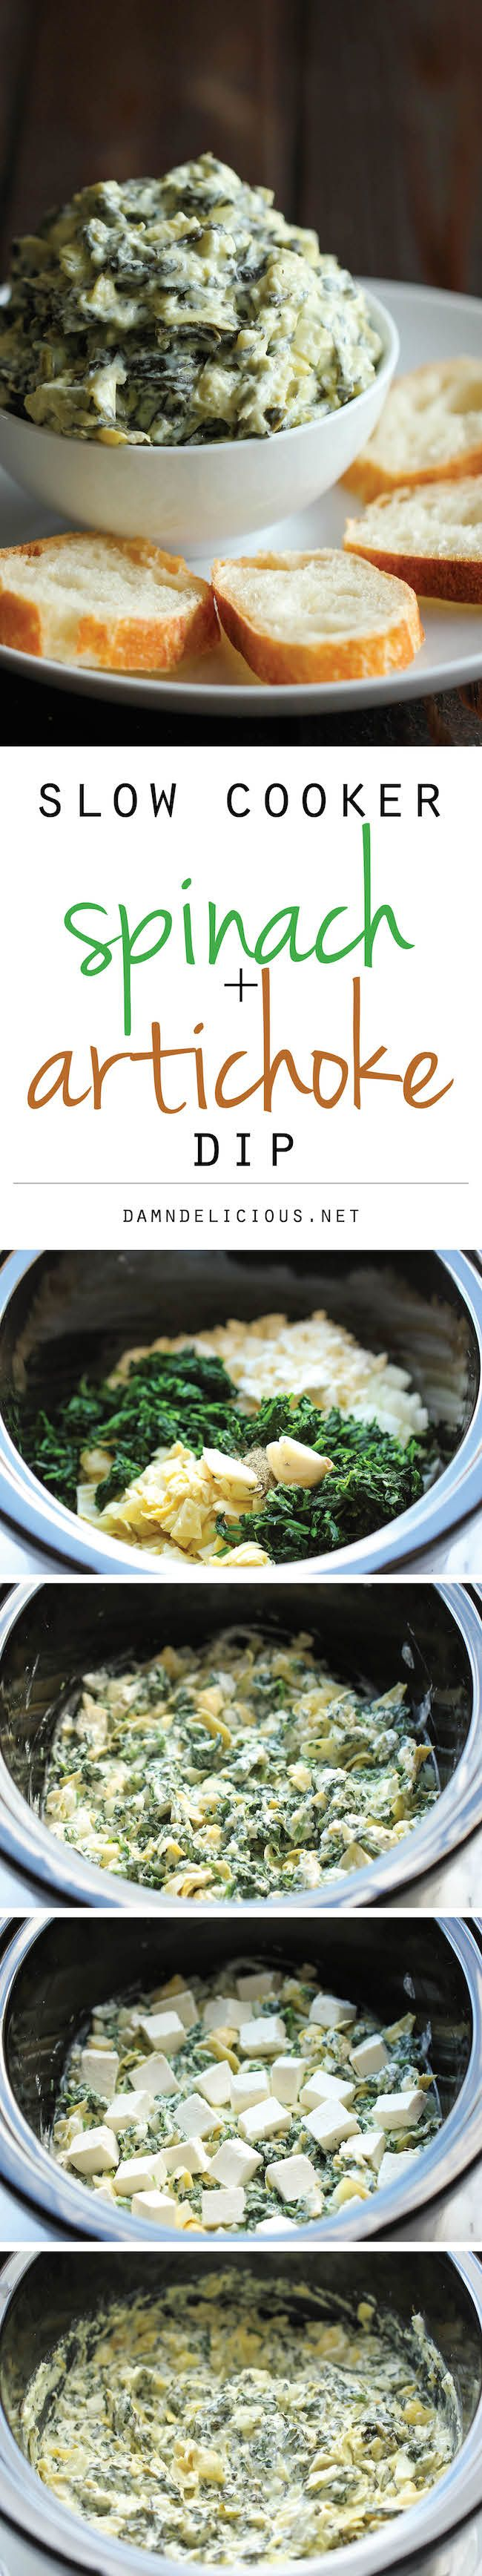 Slow Cooker Spinach and Artichoke Dip ~ simply throw everything in the crockpot for the easiest, most effortless spinach and artichoke dip!